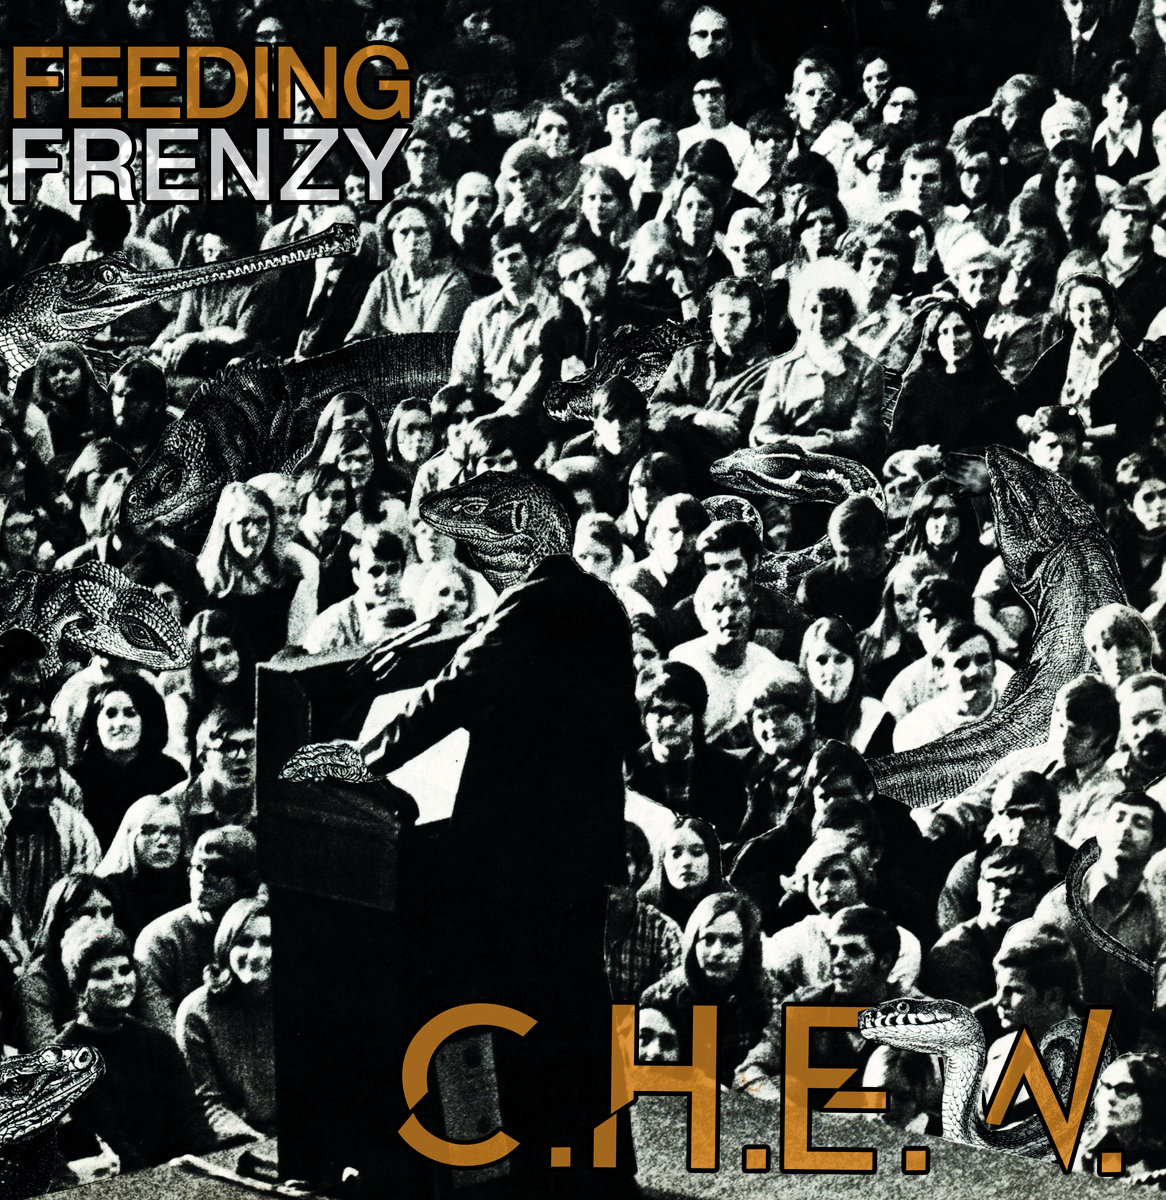 Feeding Frenzy by C.H.E.W. - HARDCORE PUNK AT ITS MODERN DAY FINEST. CHEW HOLD NOTHING BACK ON THEIR FEEDING FRENZY LP AND ARE HERE TO BRING PAIN AND WAR. I FEEL THE NEED TO TYPE THIS REVIEW IN ALL CAPS BECAUSE THAT'S HOW THIS MUSIC MAKES ME FEEL. LIKE IM MAKING A STATEMENT. AND ITS LOUD. AND I'M PISSED OFF. AND EVEN IF YOU CAN'T UNDERSTAND WHAT IM SAYING, YOU SHOULD HEAR IT AT IN INAPPROPRIATE VOLUME BECAUSE FUCK YOU.…and that's exactly how I like my music.As the spitfire drumroll of Feed Frenzy pollute the airwaves and a good old bottle full of hardcore punk cracks open over the side of your face, leaving your teeth gripping the root of your gum for dear life as the wide open cheek wound's blood pools in your mouth, forcing you to CHEW on your tongue as your head uncontrollably bangs to this sonic creation… I assume thats how CHEW got their name. Possibly is a scenario like that. OR perhaps CHEW might stand for something. CHEW stand for.. actually, stand against.. many things; and we'll get to that later. Rather, I'm thinking like an acrostic stye, as in Can't Hardly Earn Wages; or Come Here Eat Worms, or Continue Hating Economy Whores, OR maybe the answer is a simple Google search away… it actually means Cold Hands Elicit Worry, which makes sense, I'm just trying to creatively get my point across. Hailing from the only city more violent than their music, Chicago (with the utmost respect, I love that city and like them more for being from there), CHEW have created a perfectly balanced, yet utterly chaotic, modern day hardcore punk that could be stacked against the best of them. The thing is those classic hardcore bands and records are even more relevant today than they were then, which is perhaps beautifully timed irony or simply a cruel twist of fate.. time will tell.. but CHEW are not waiting around to find out. And that's the thing you can't say about most (if any) pop music.Punk has a place not only in hearts and heads of the educated rejects and rebels alike,